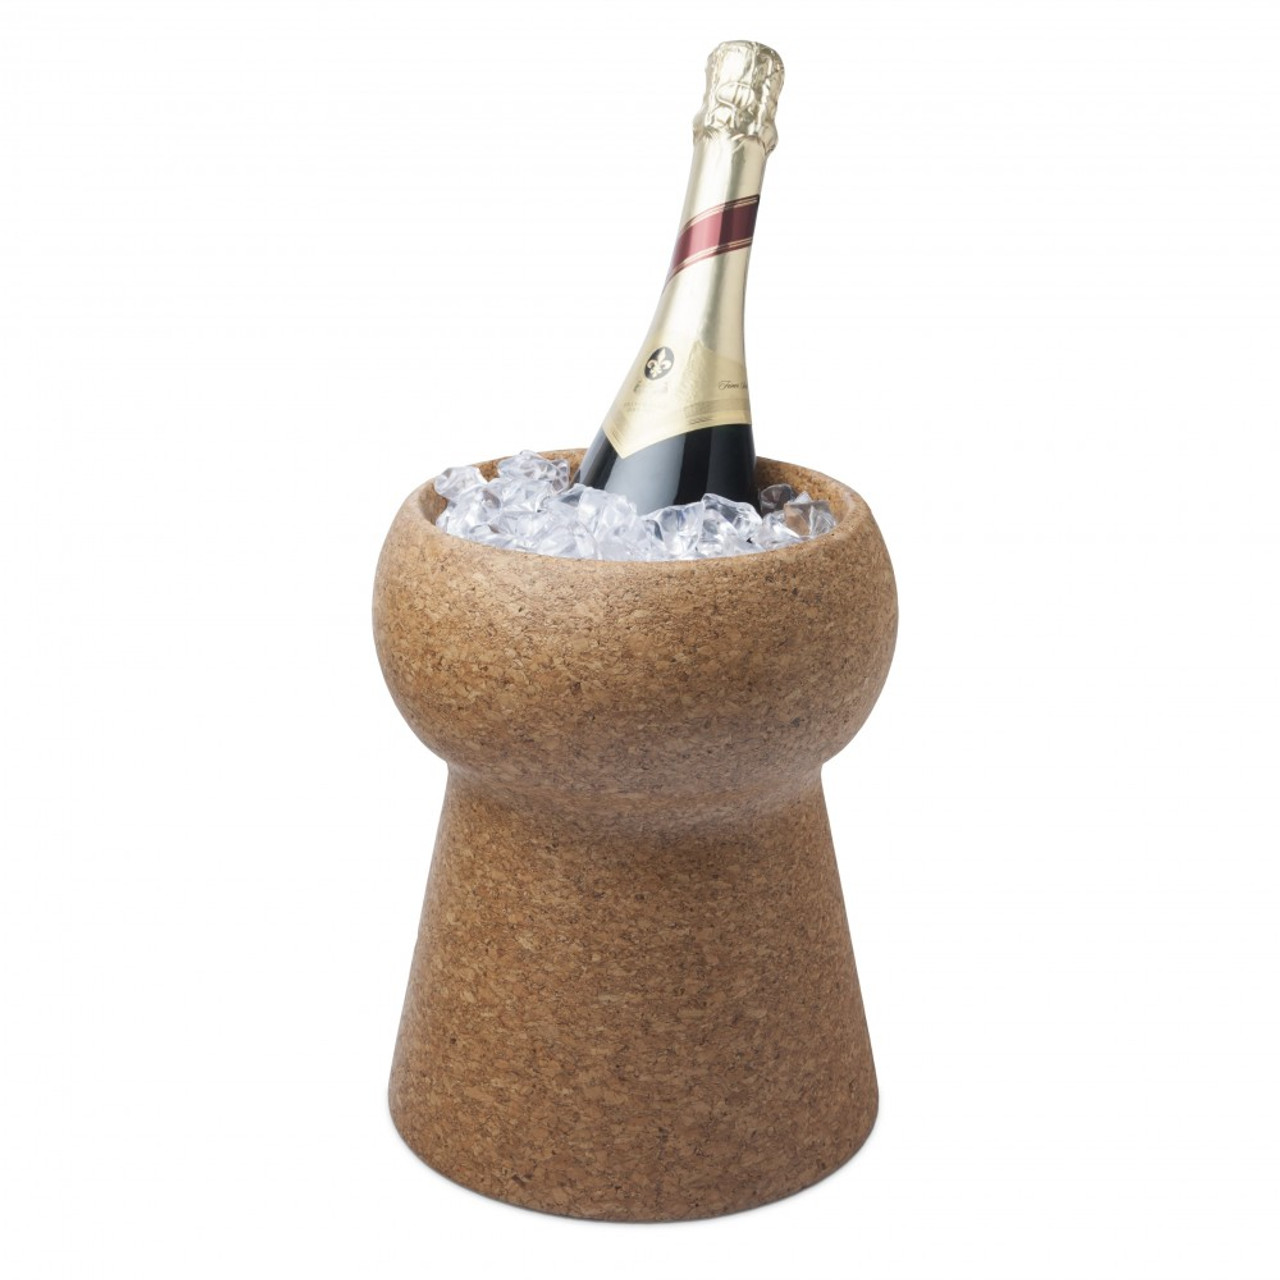 FINAL TOUCH CHAMPAGNE & WINE CORK BEVERAGE BIN